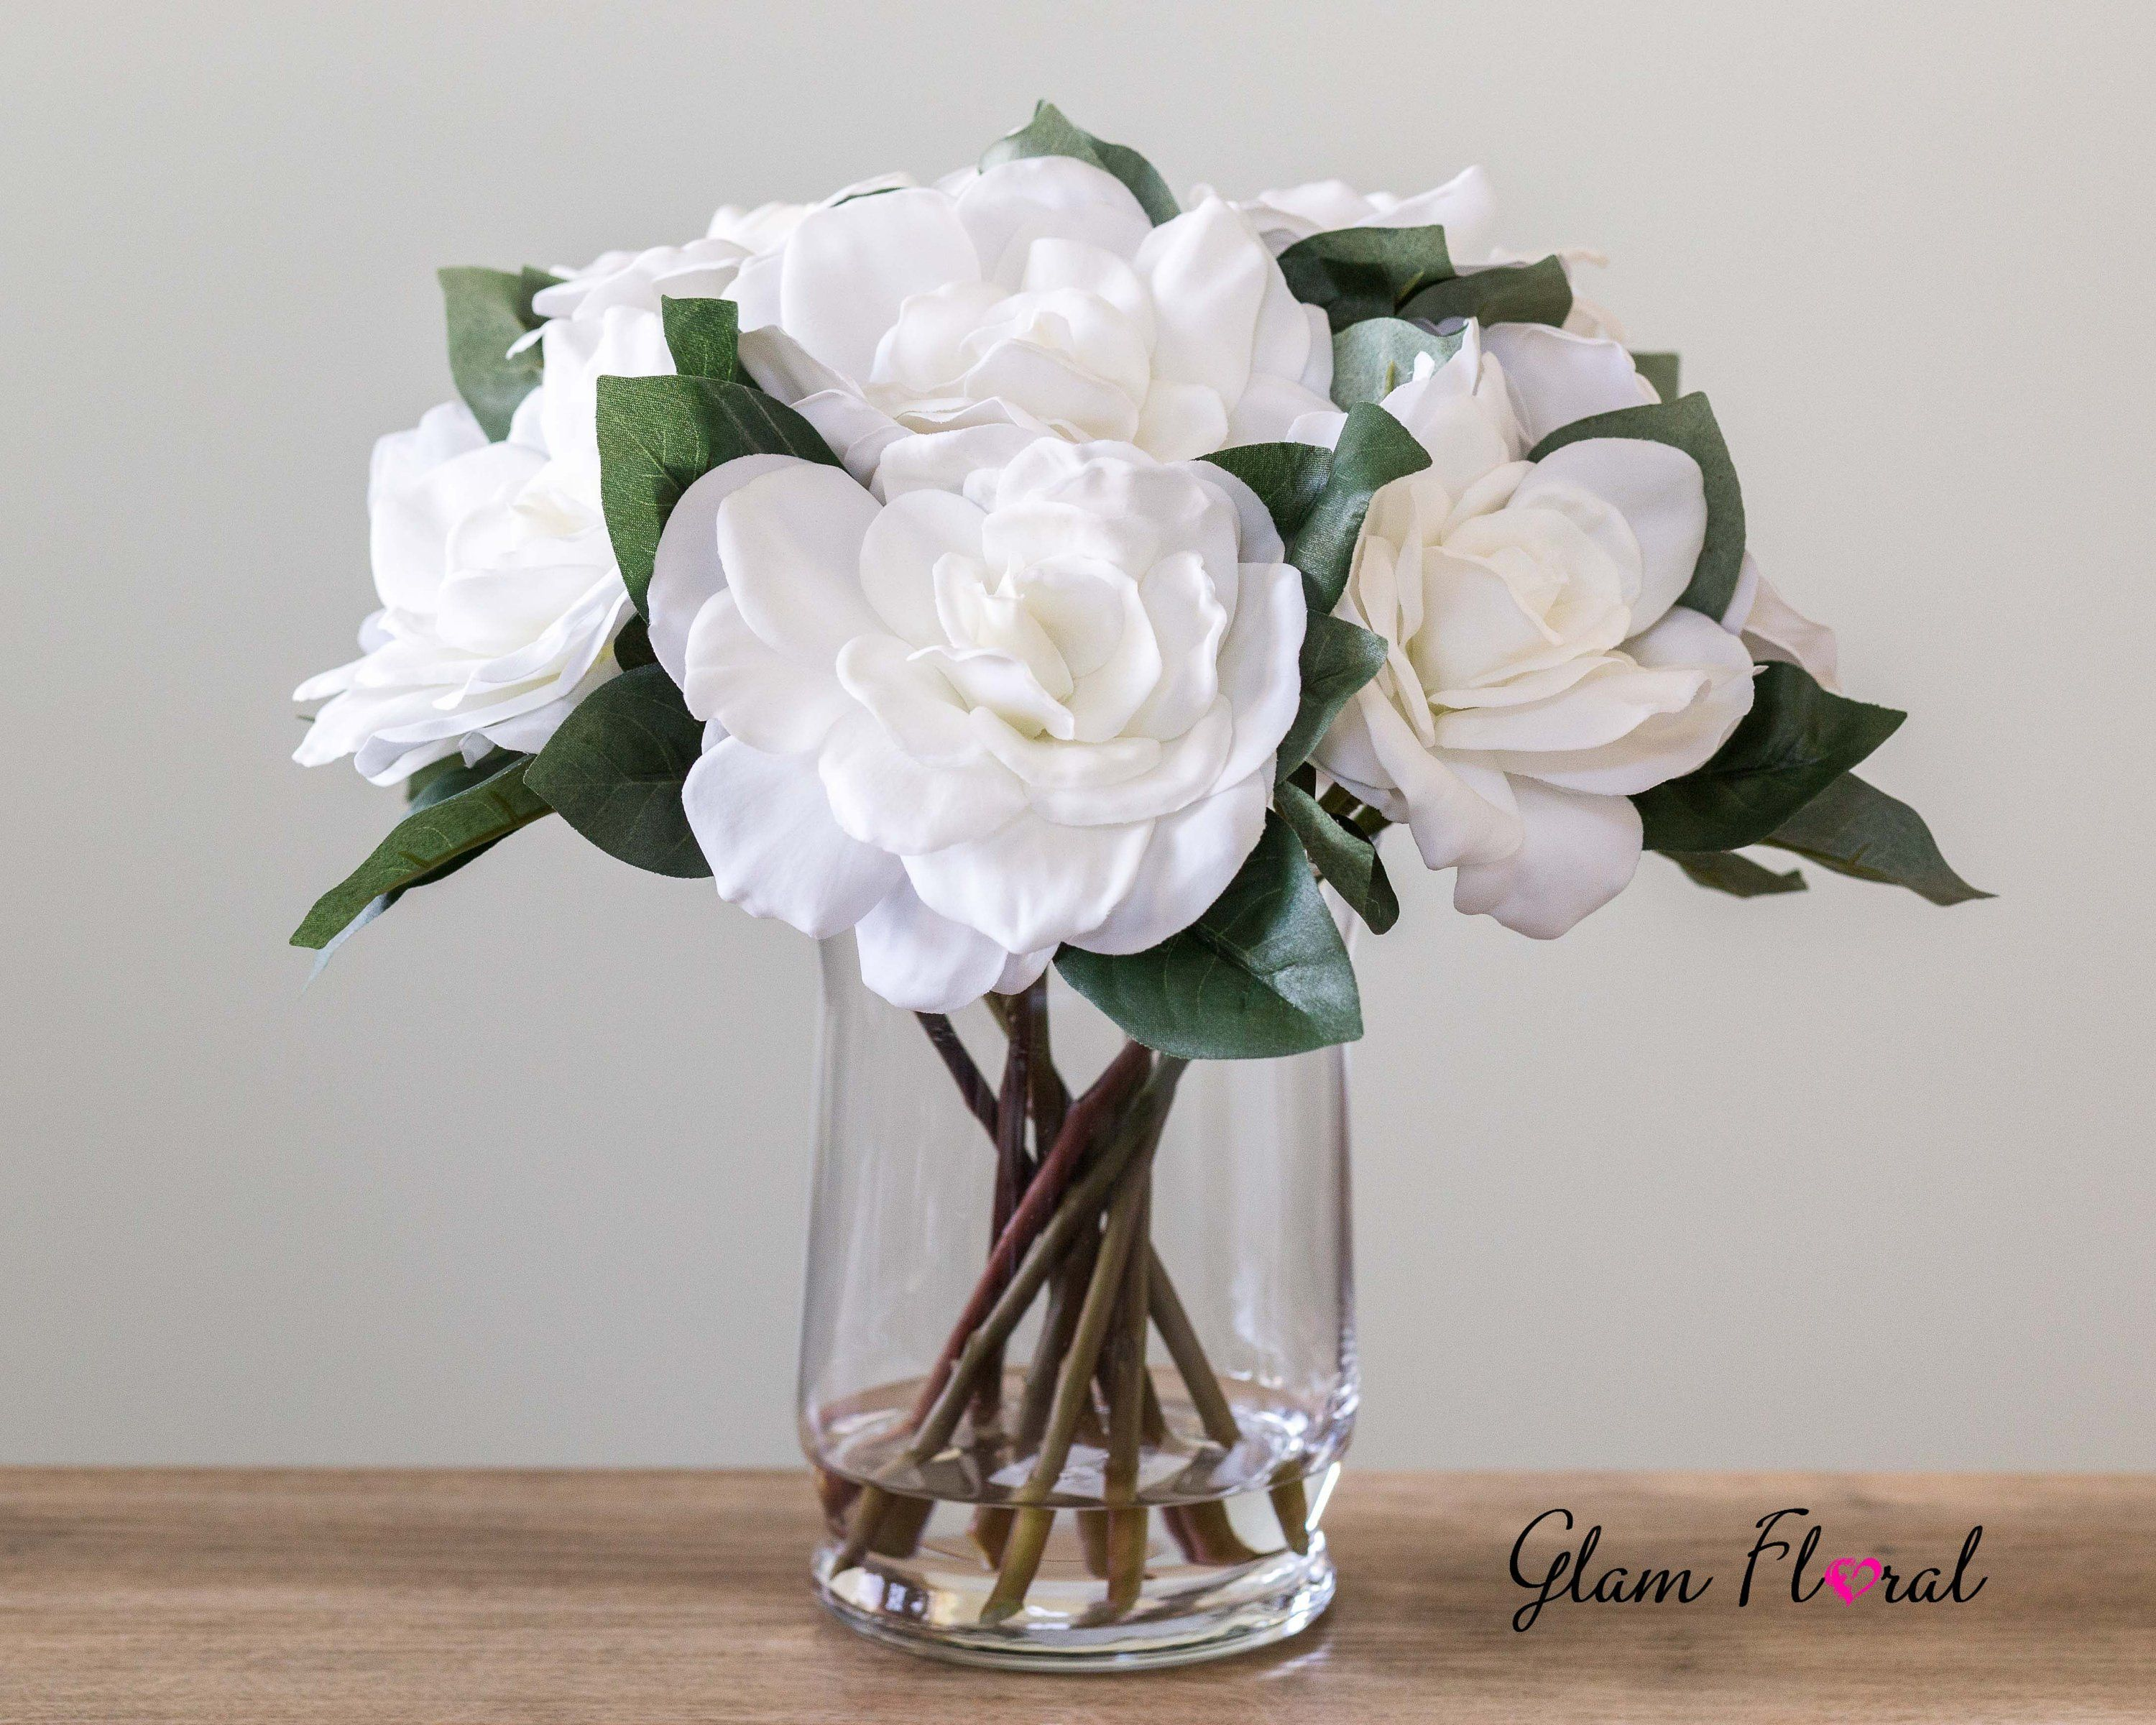 White Real Touch Gardenia Flower Arrangement Gardenias With Leaves In Faux Water Clear Glass Vase White Wedding Bouquet Centerpiece Flower Arrangements Flower Arrangements Center Pieces White Wedding Bouquets